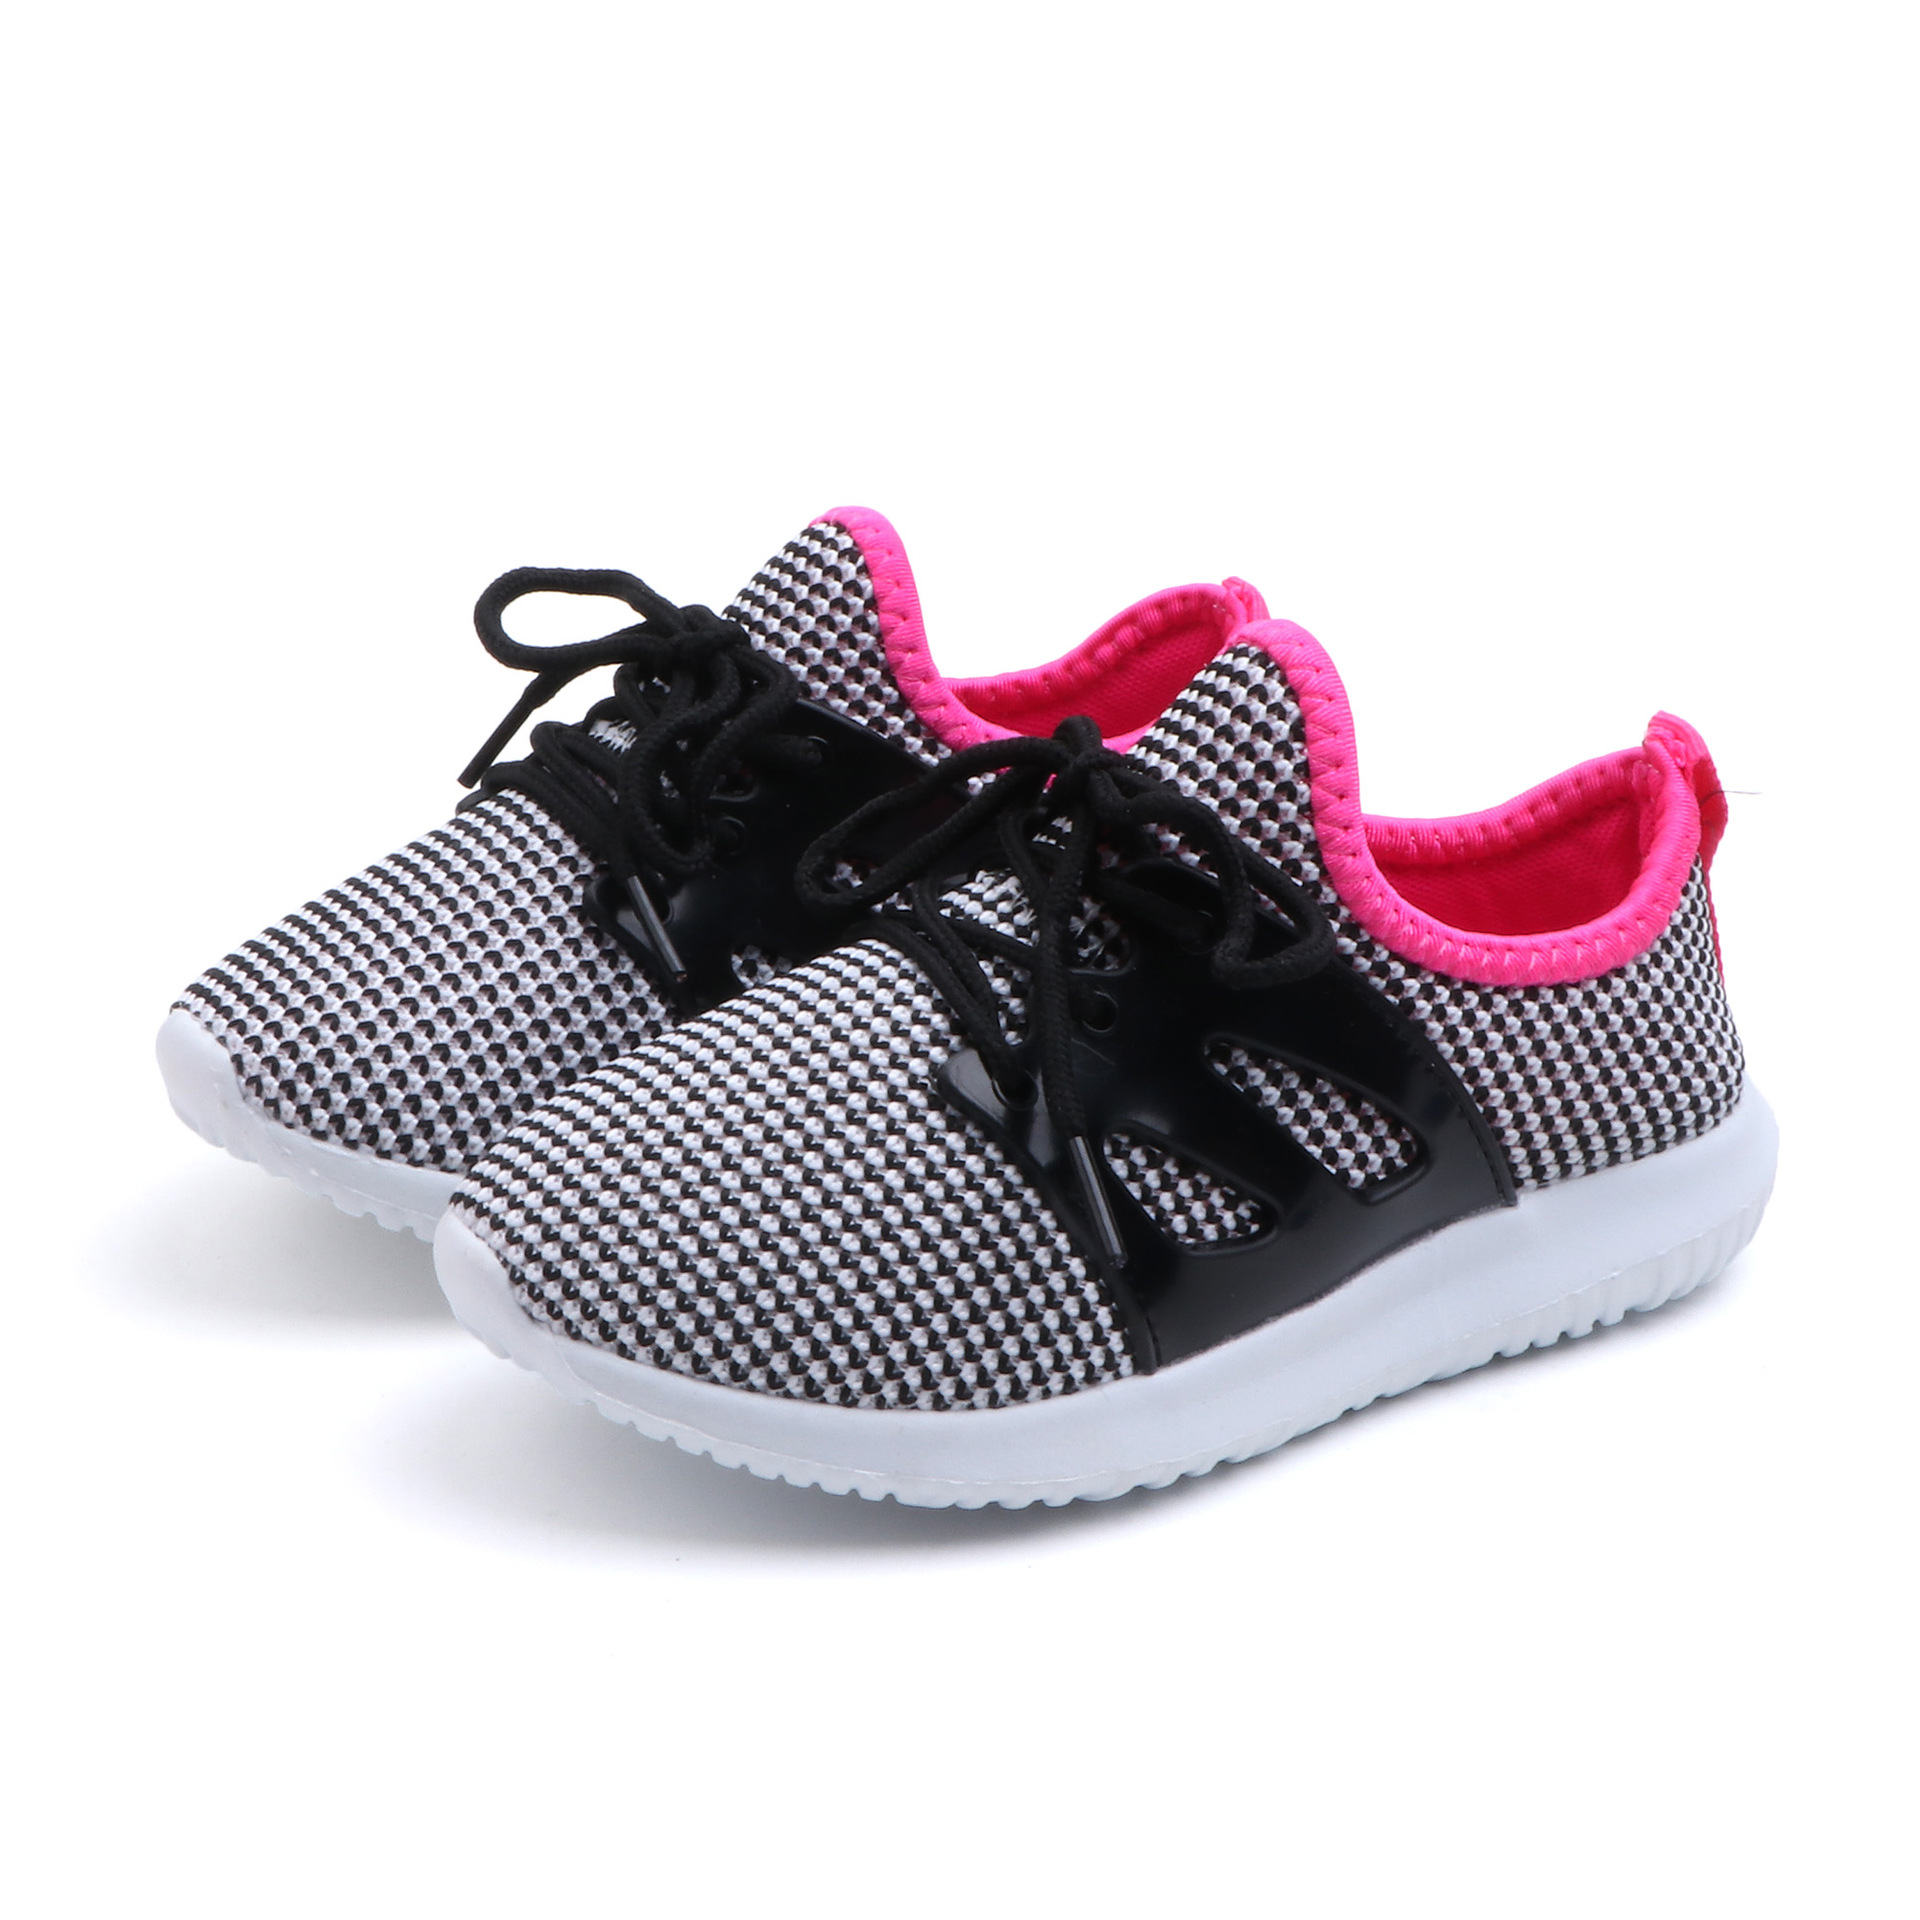 New Boy Shoes Girls Children's Sports Running Shoes Fashion Casual Spring Summer Autumn And Winter Seasons Tennis Badminton Shoe